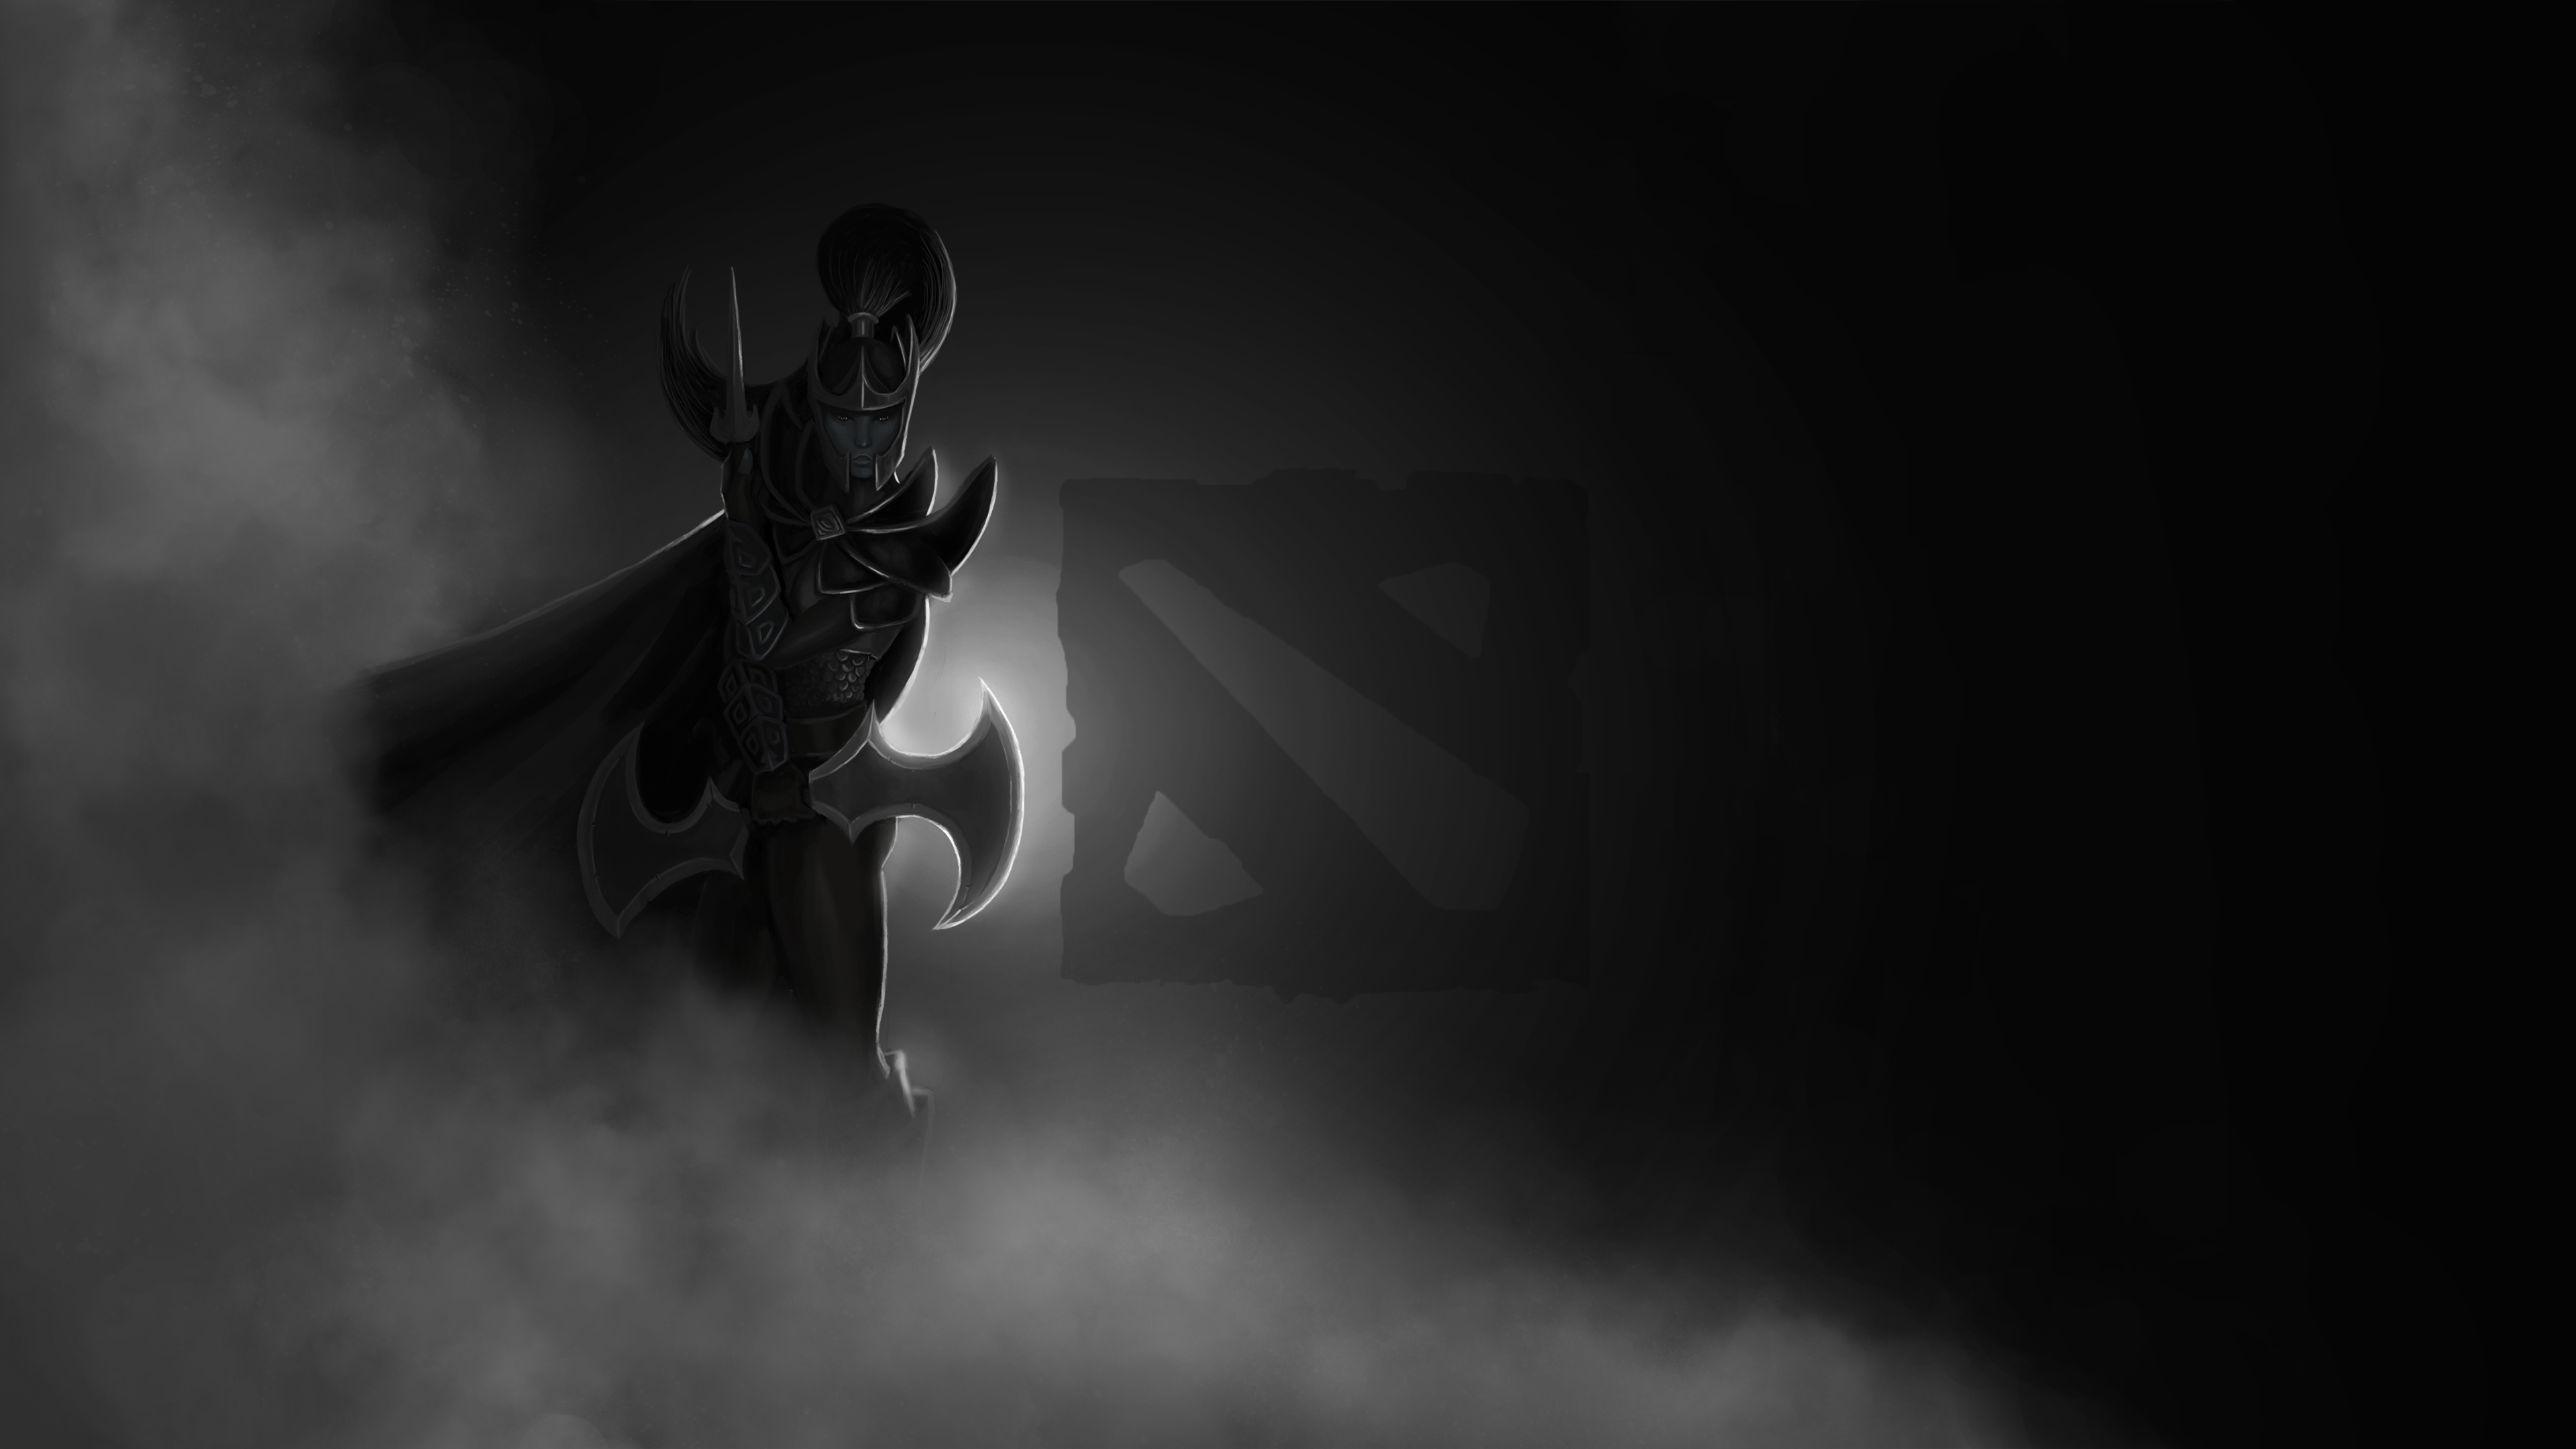 2016 Dota 2, HD Games, 4k Wallpapers, Images, Backgrounds